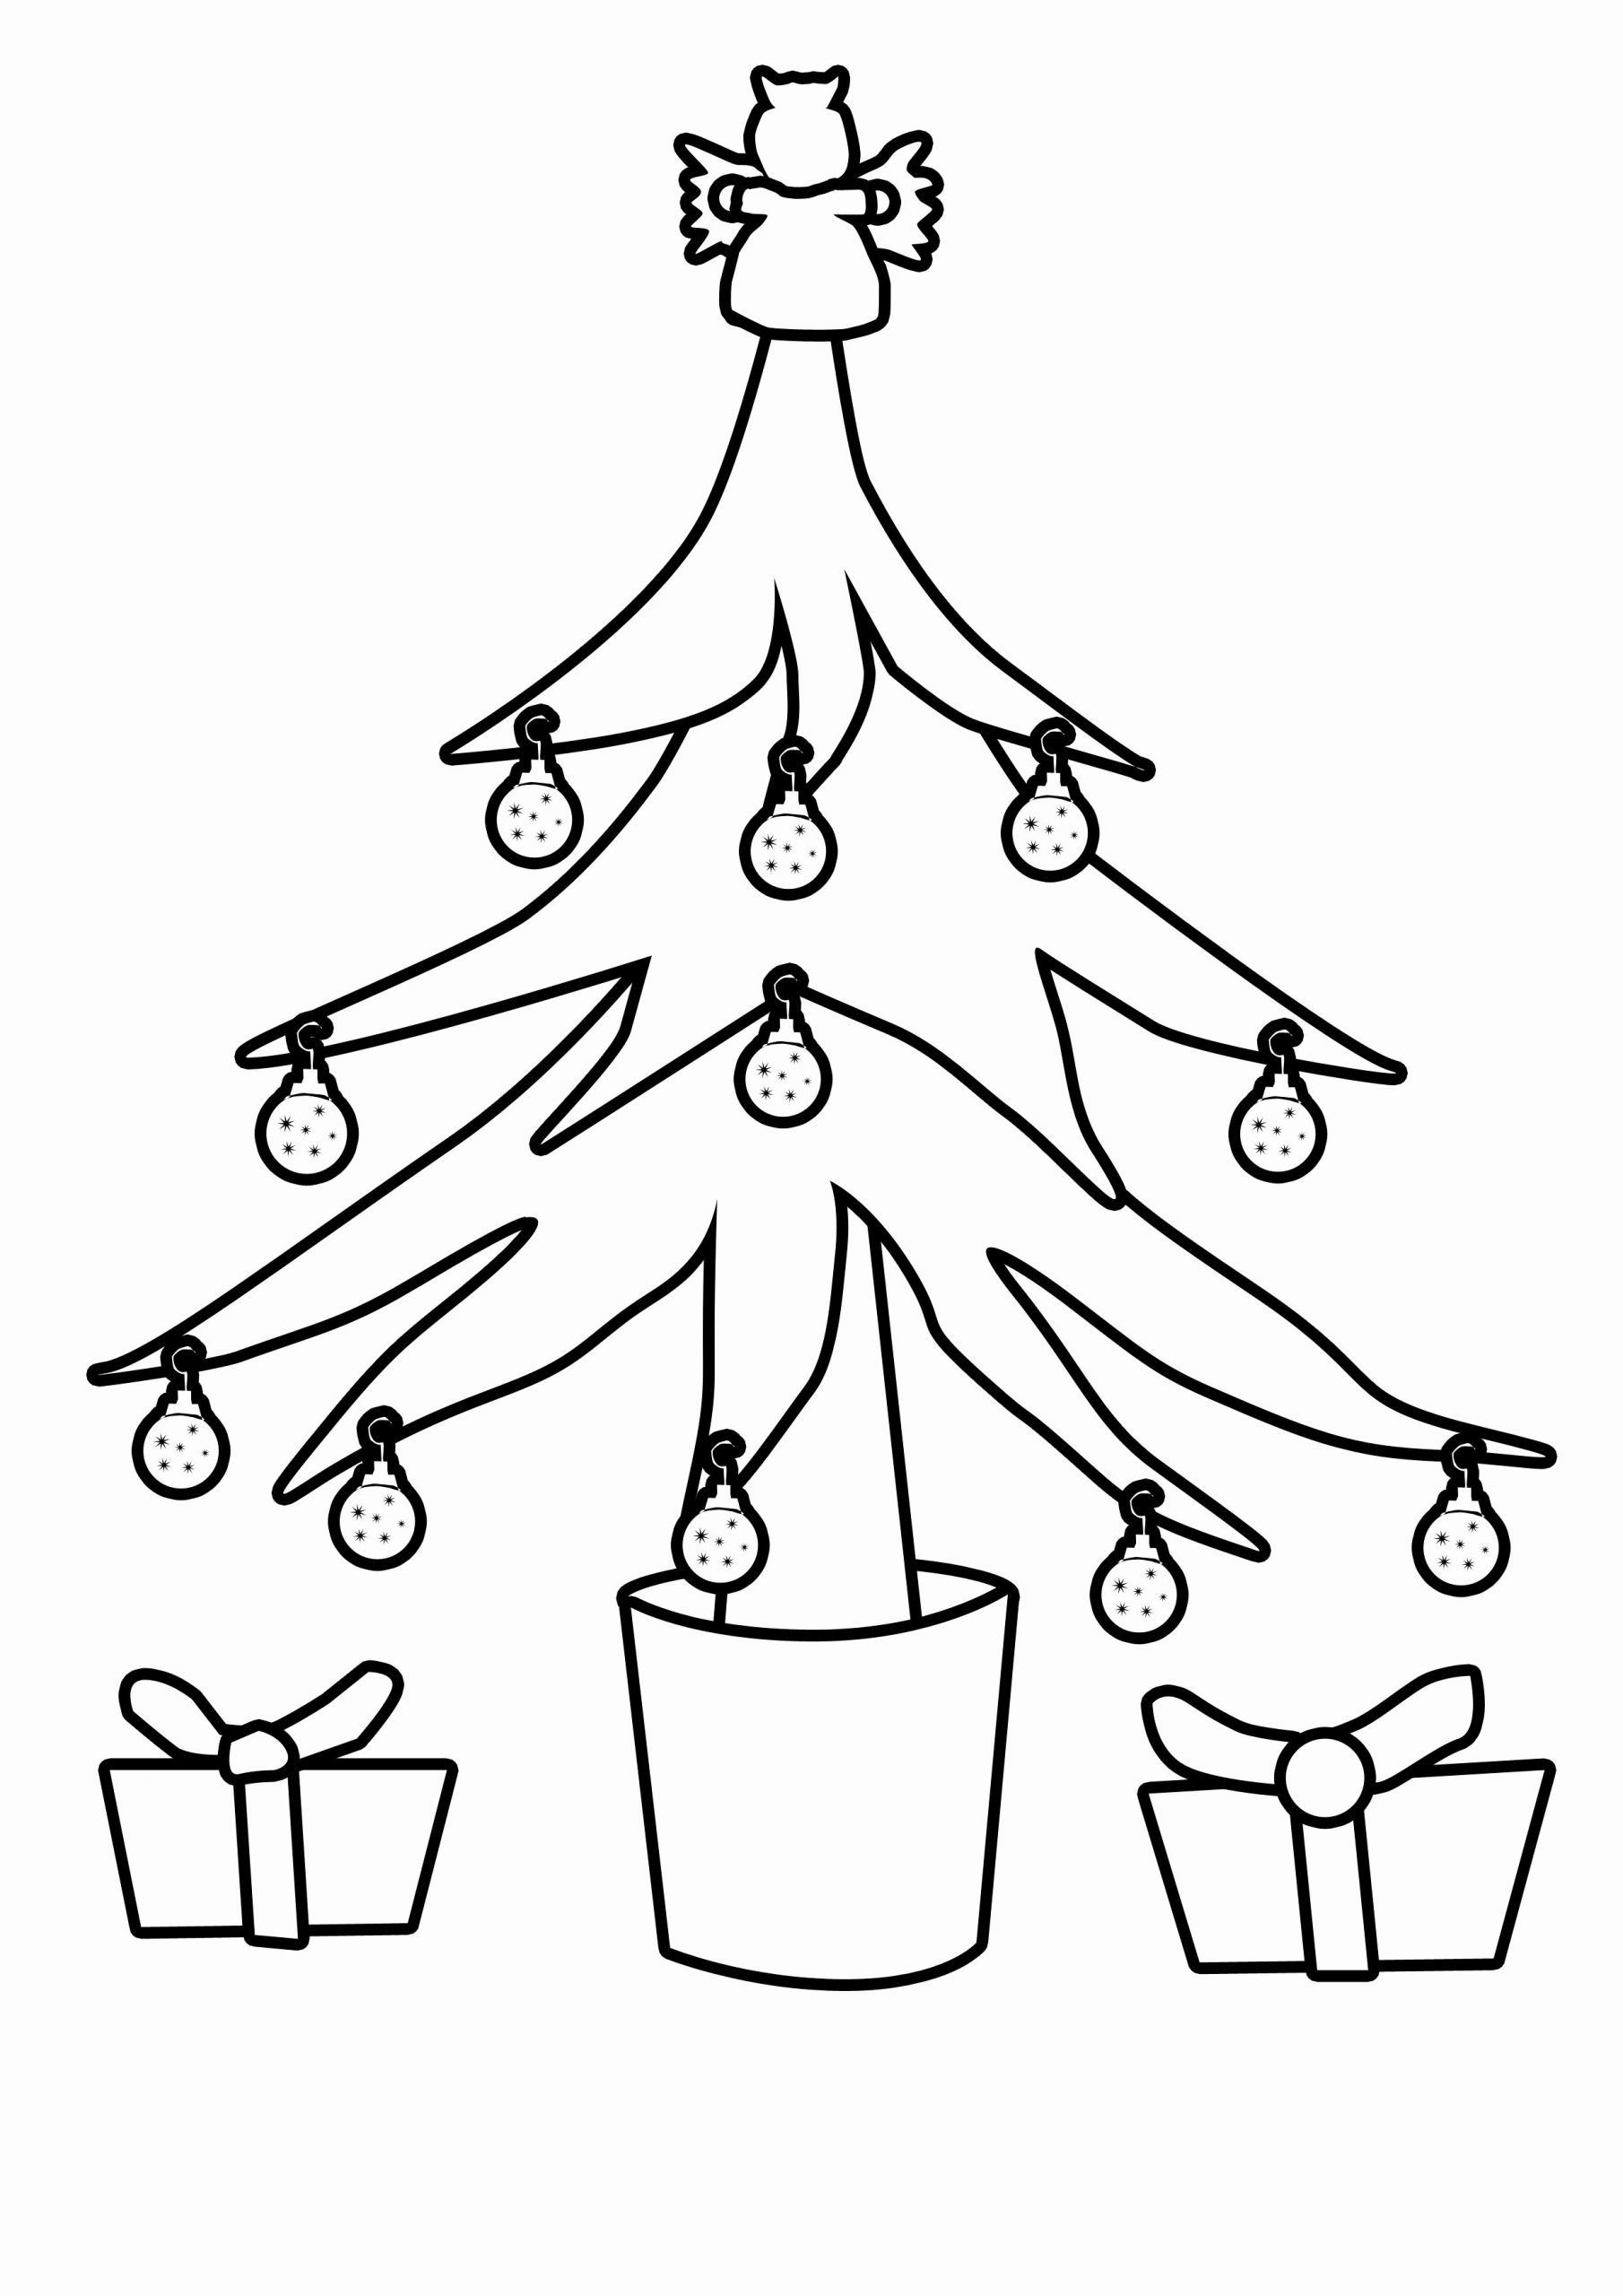 Coloring Book Evergreen Tree Coloring Pages Gallery Book Coloring Evergreen Gallery Tree Coloring Page Christmas Tree Coloring Page Christmas Tree Outline